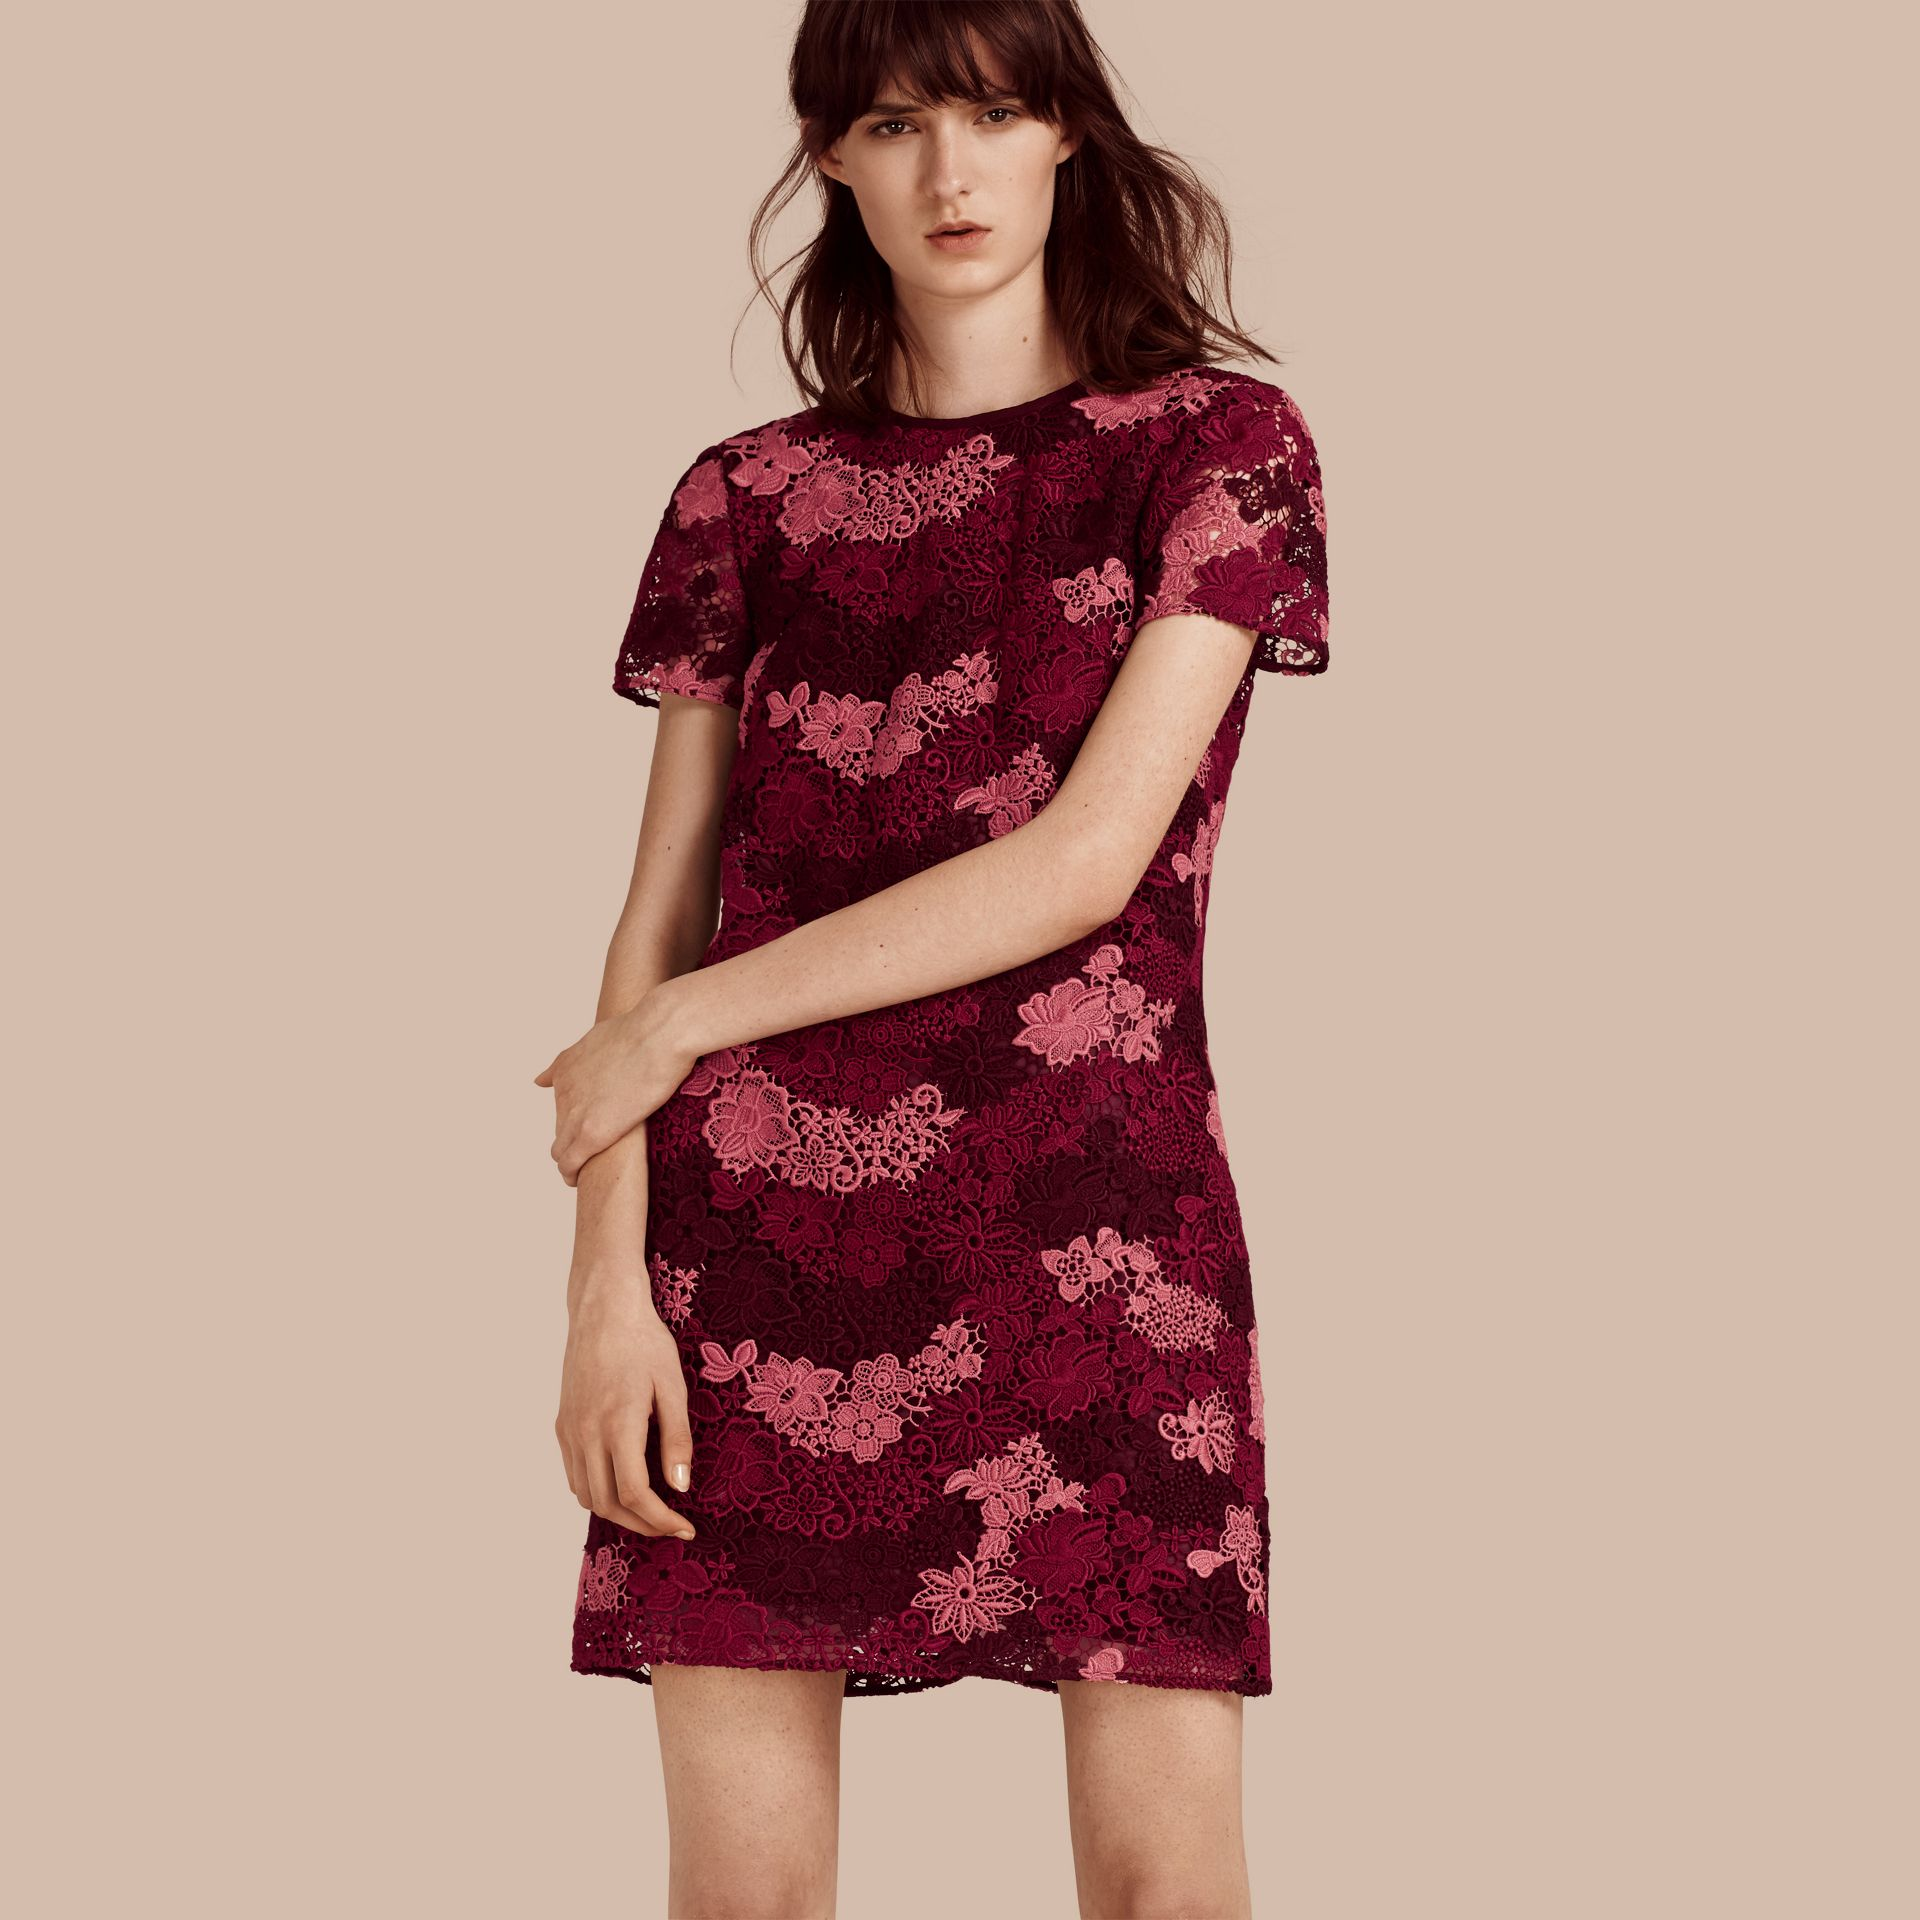 Deep claret Italian-woven Lace T-shirt Dress Deep Claret - gallery image 1